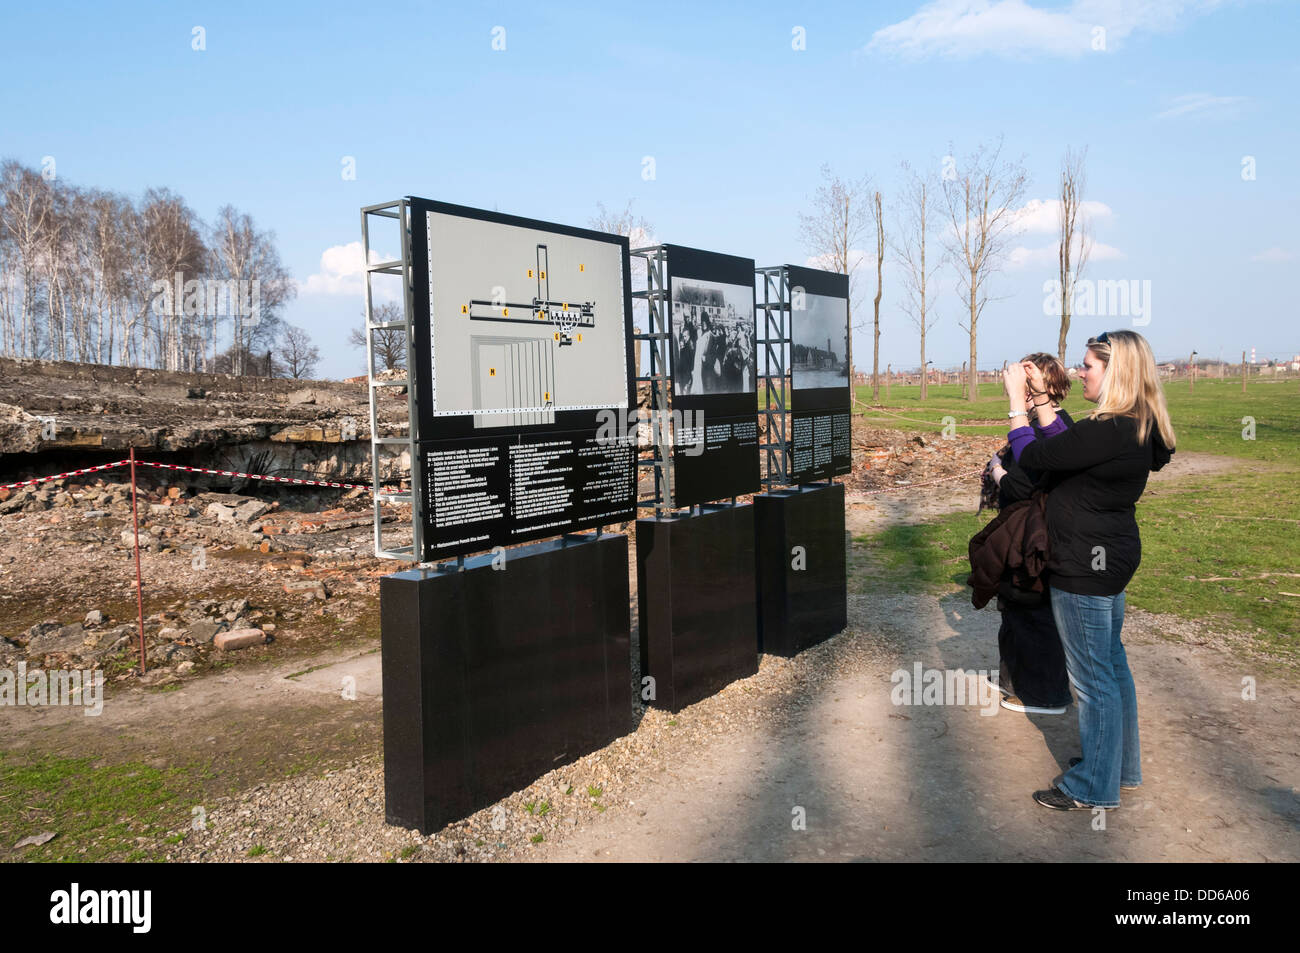 Visitors at Auschwitz concentration camp. - Stock Image